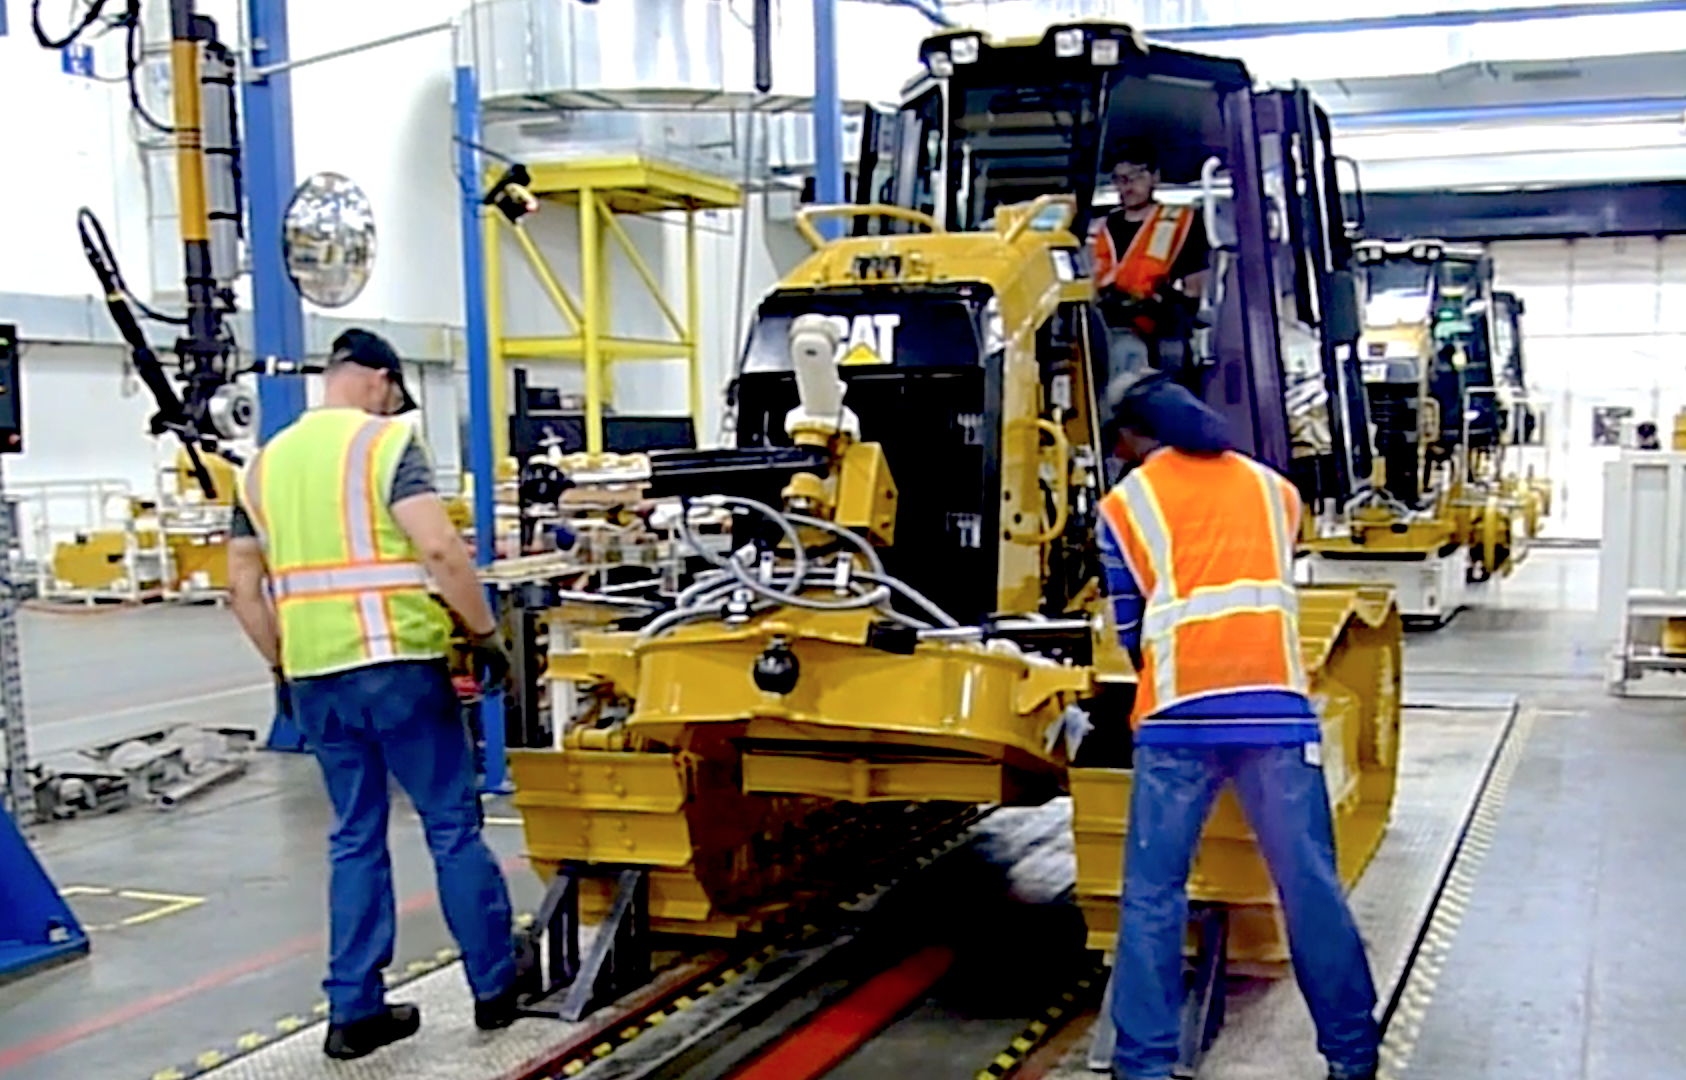 The Top 10 Construction Equipment Videos of 2017